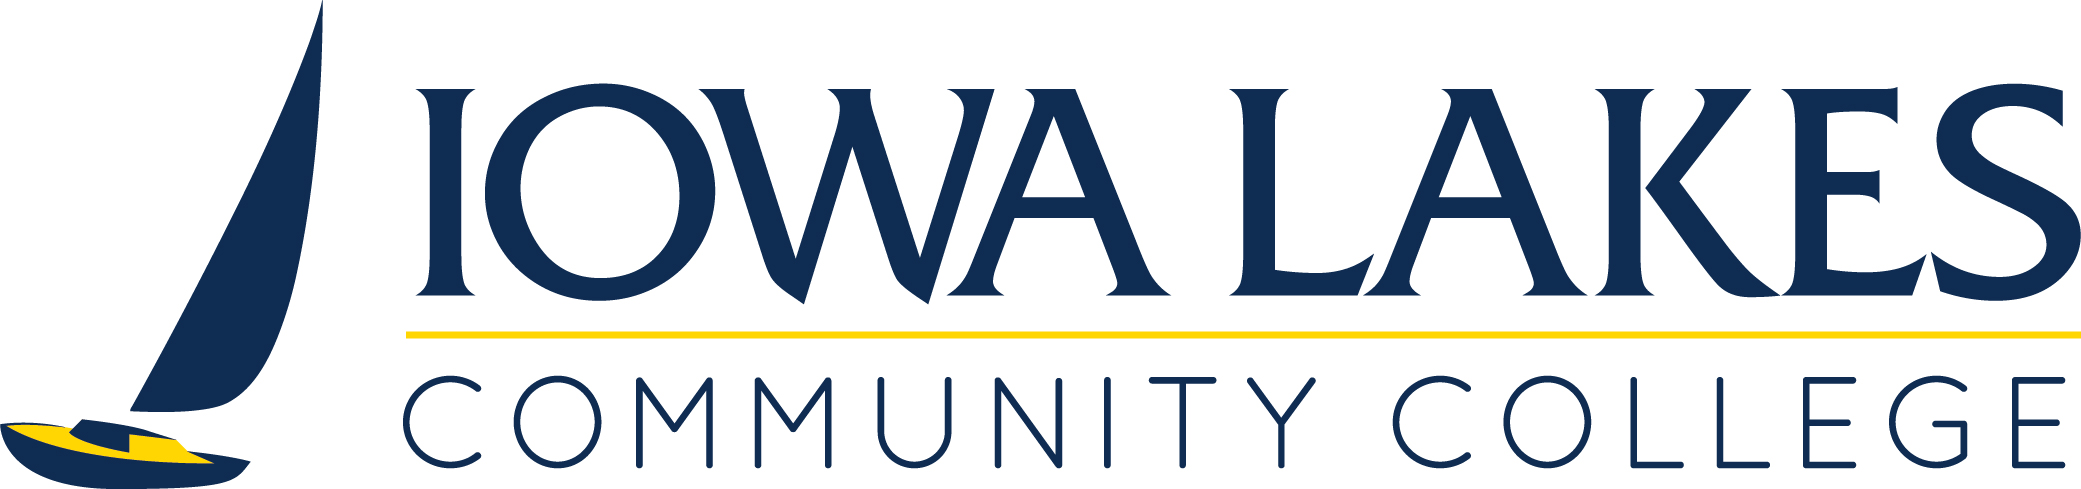 Iowa Lakes Community College Logo